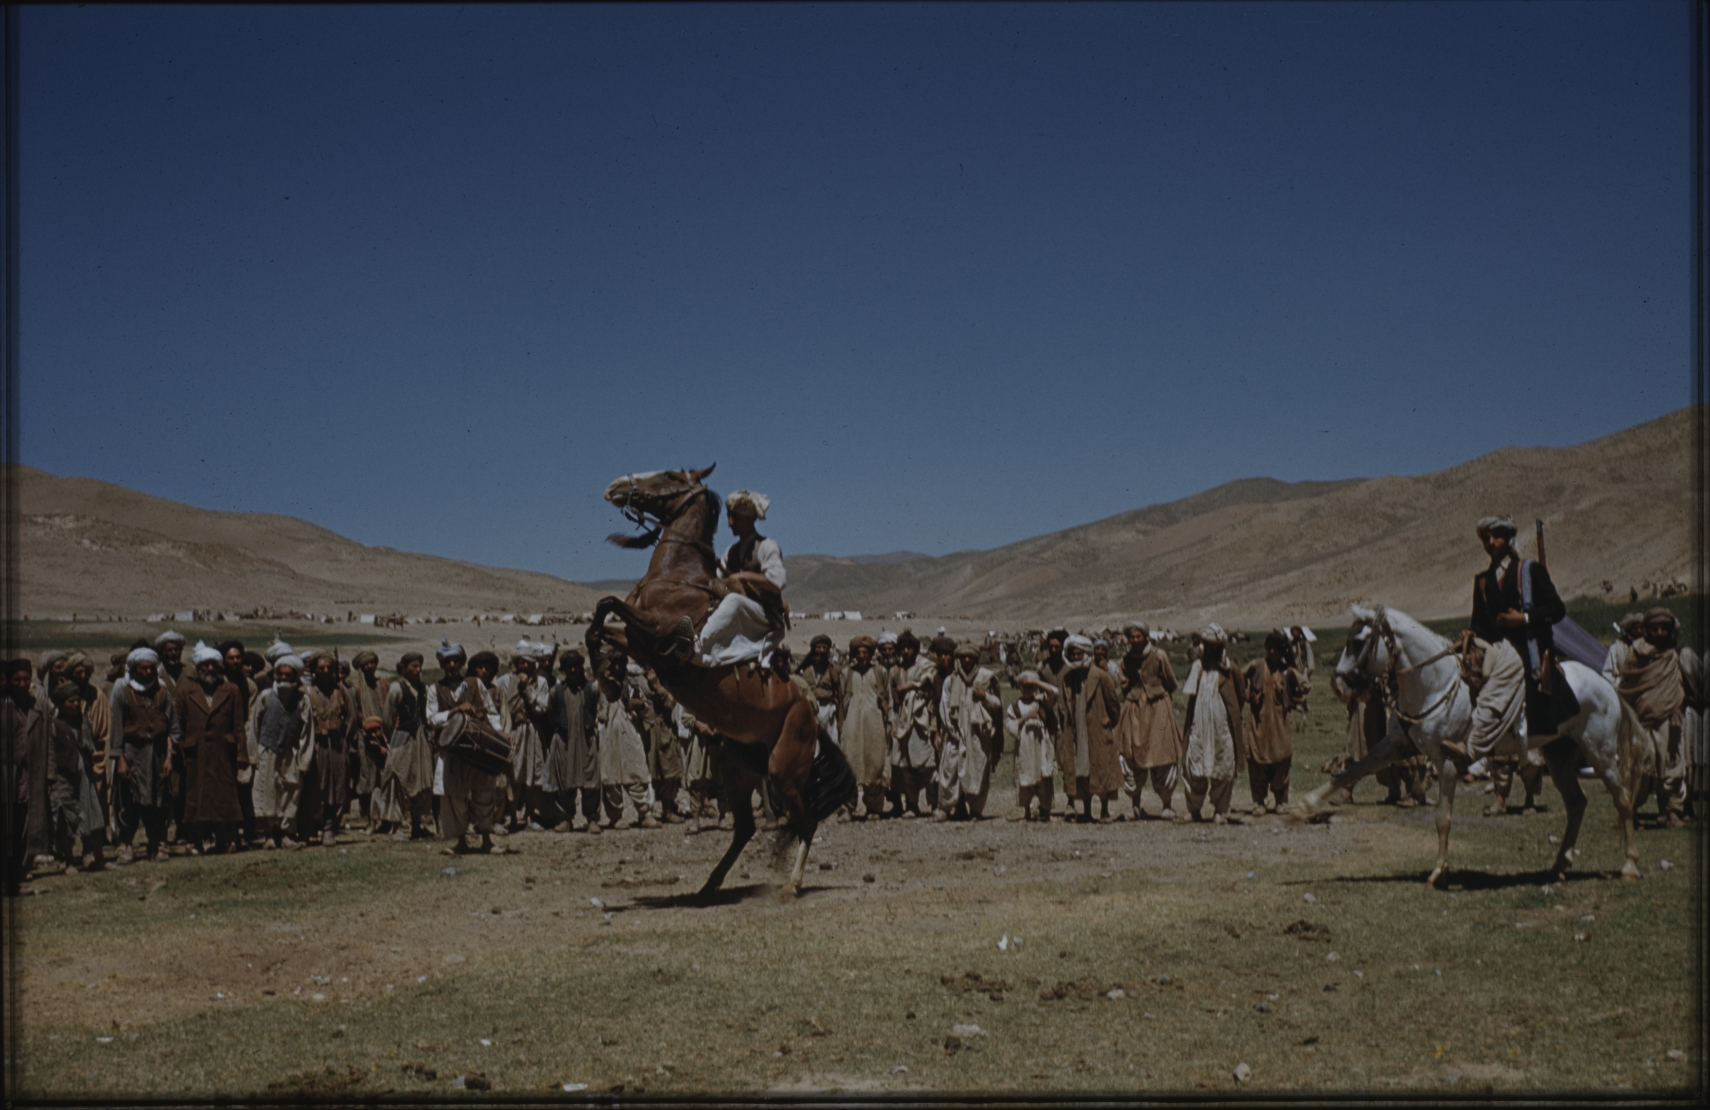 The bazaar was a meeting place for nomads from different parts of the country. Here they sold their animals, traded in all kinds of goods and put on performances. In the photo, a horseman demonstrates his skills. A few years after the expedition had documented the existence of this bazaar, it was closed down by the government. The Henning Haslund-Christensen Memorial Expedition, 1953-'55. Photo: the Moesgaard Museum archives